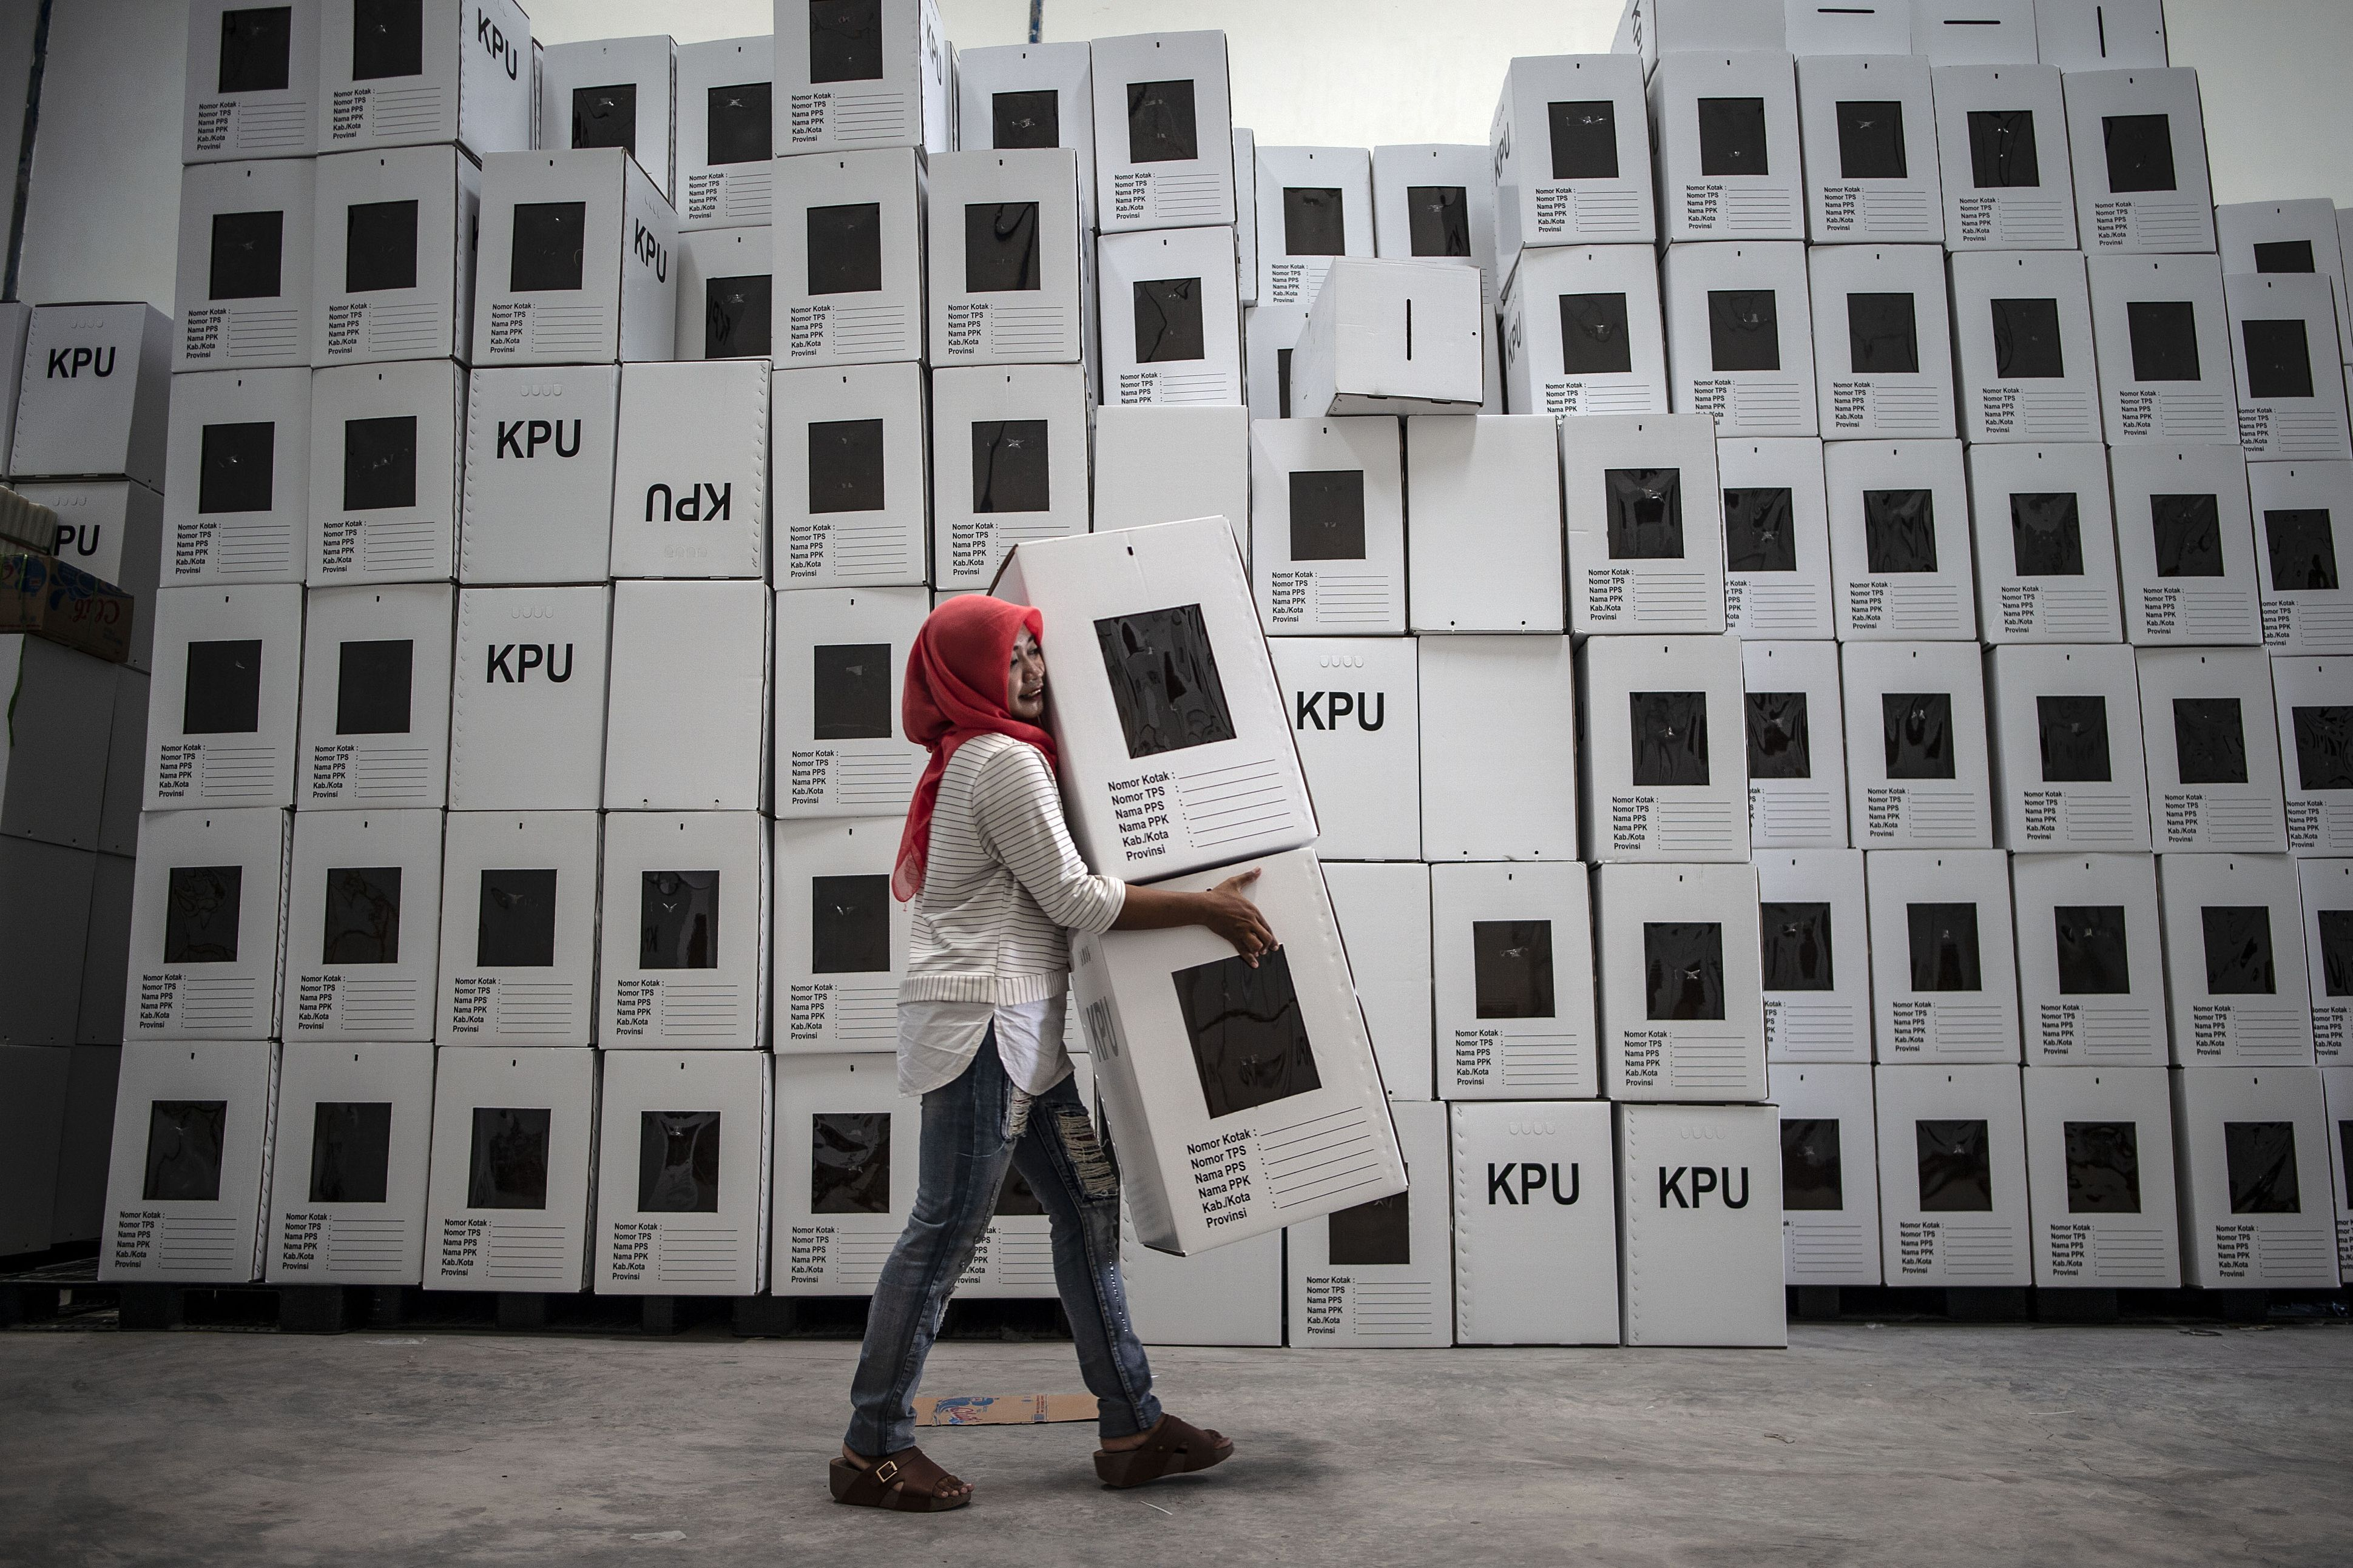 This picture taken on March 18, 2019 shows an Indonesian election commission worker arranging ballot boxes in Surabaya, in preparation for the upcoming April 17 presidential and parliamentary elections. (JUNI KRISWANTO/AFP/Getty Images)